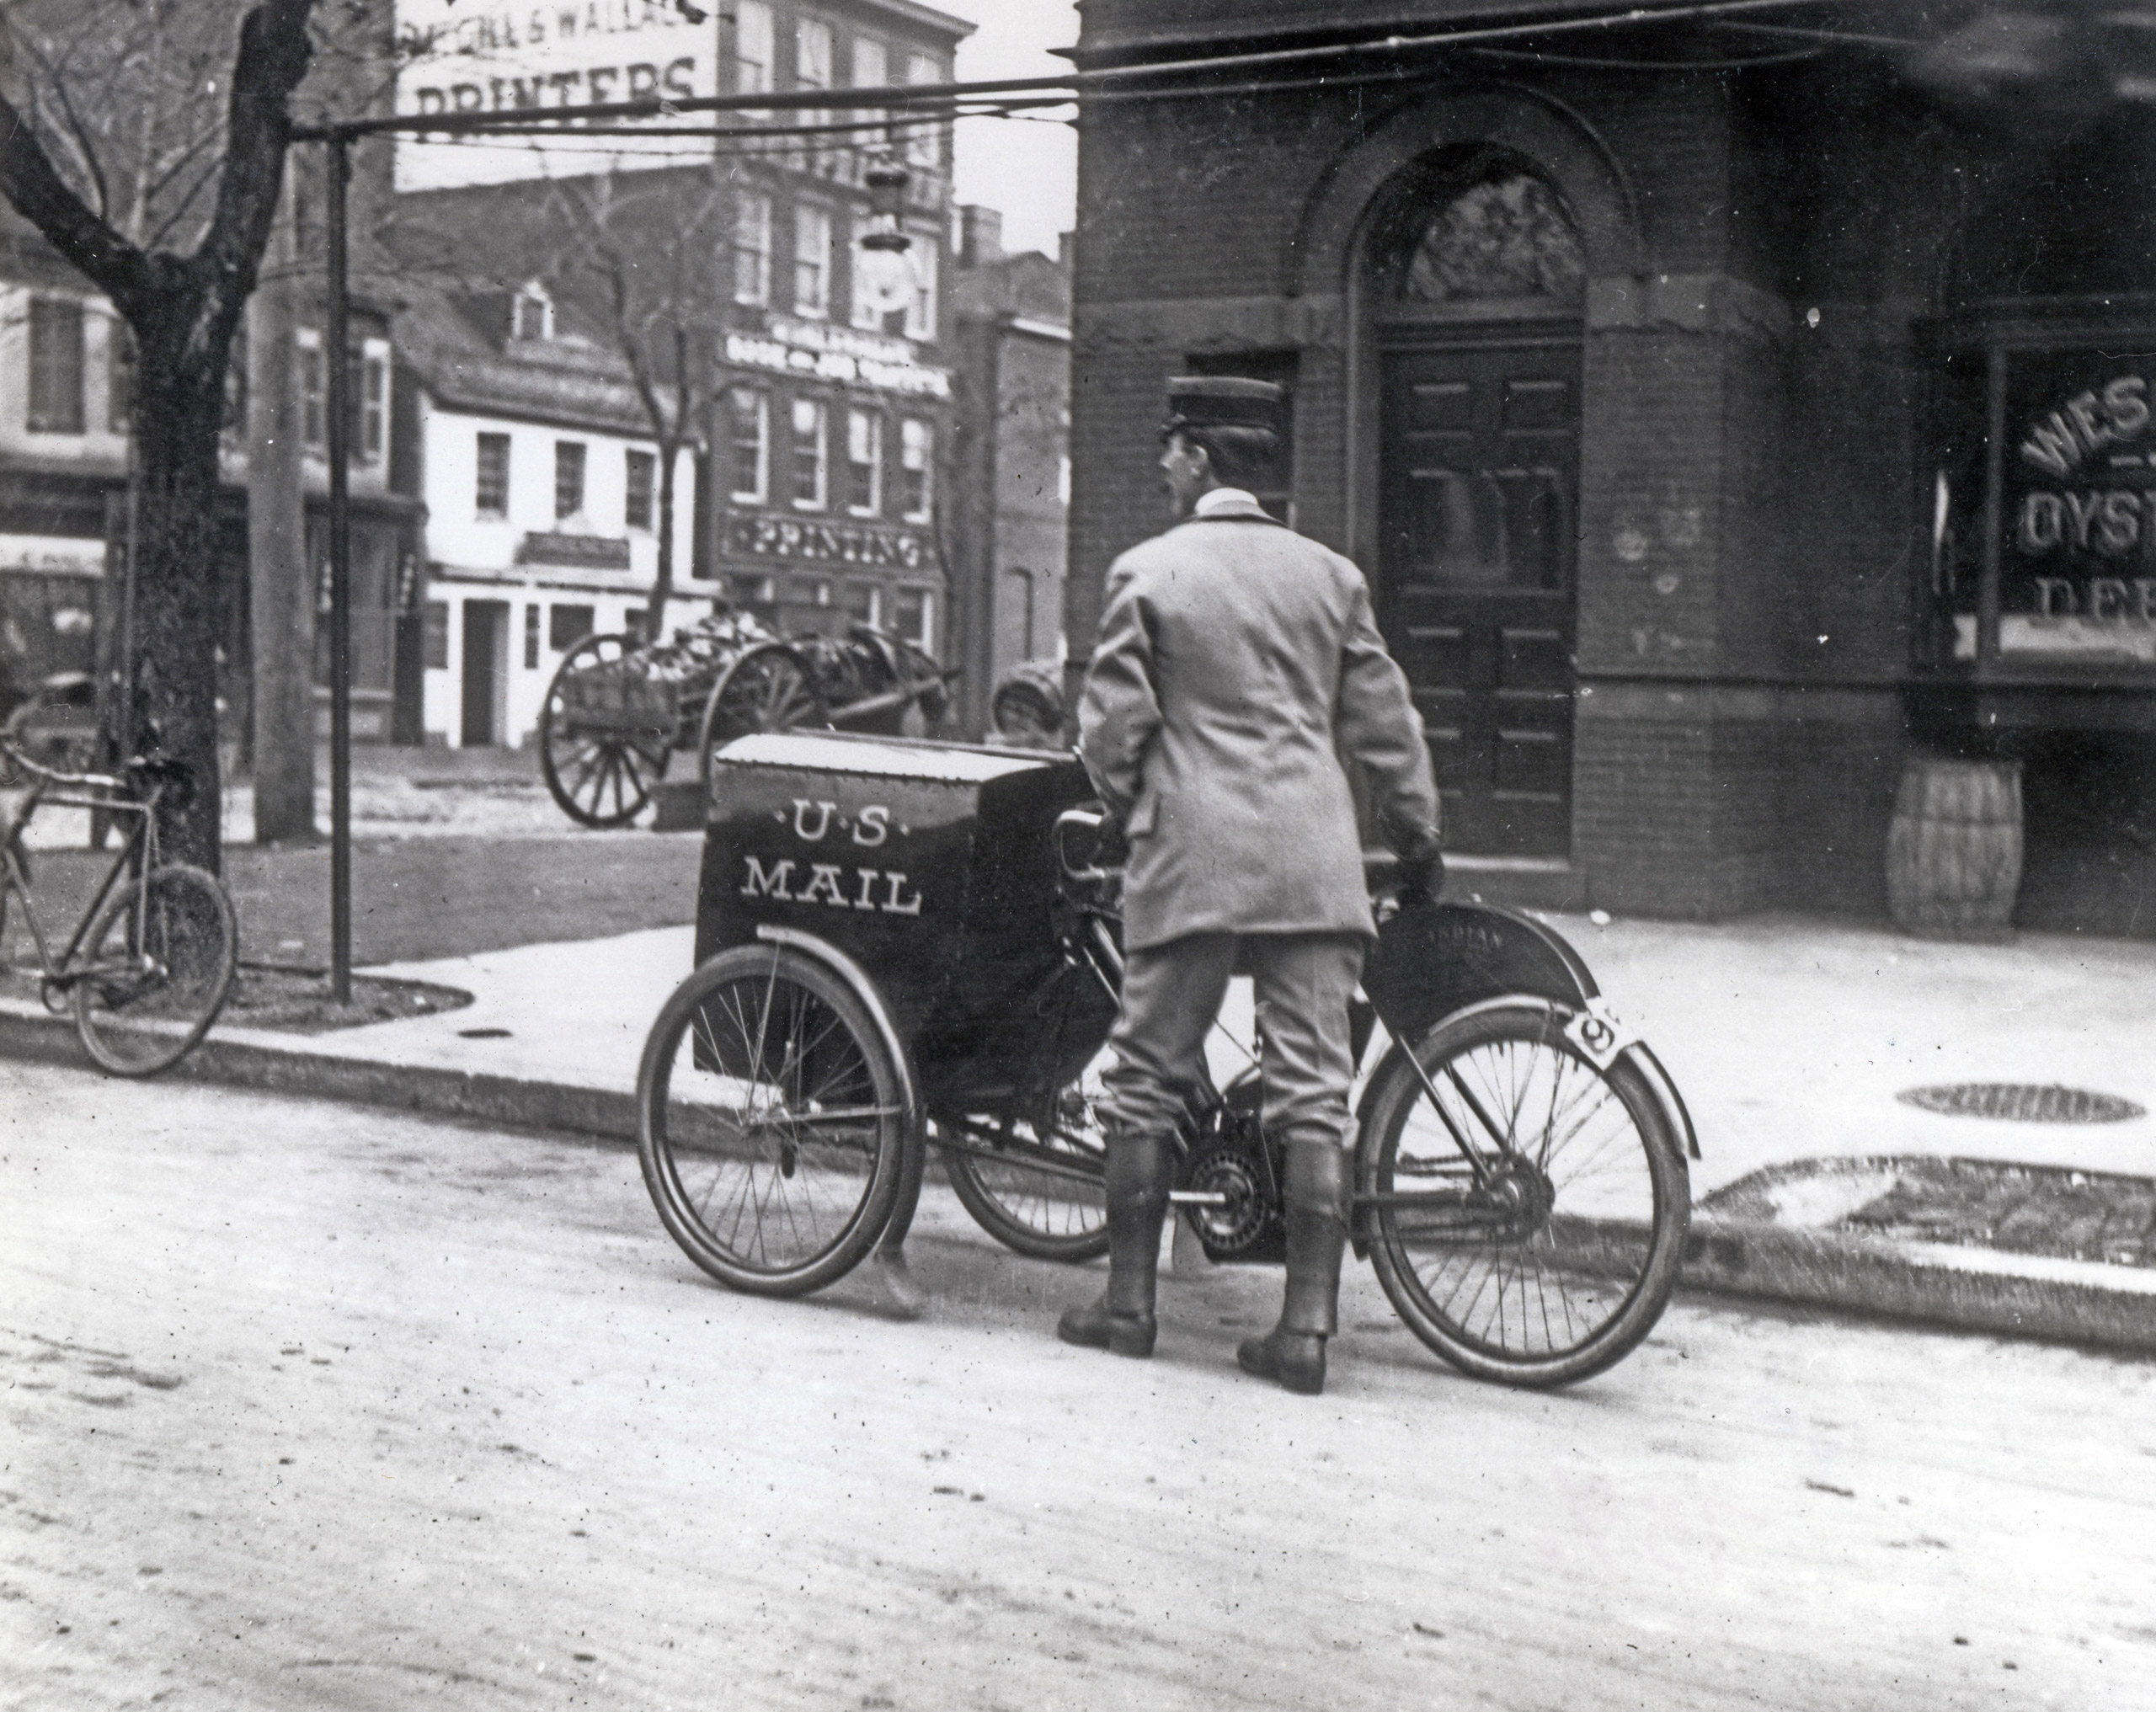 Three-wheeled mail collection motorcycle in Washington, D.C.The motorcycle was used only on an experimental basis in DC in 1912.